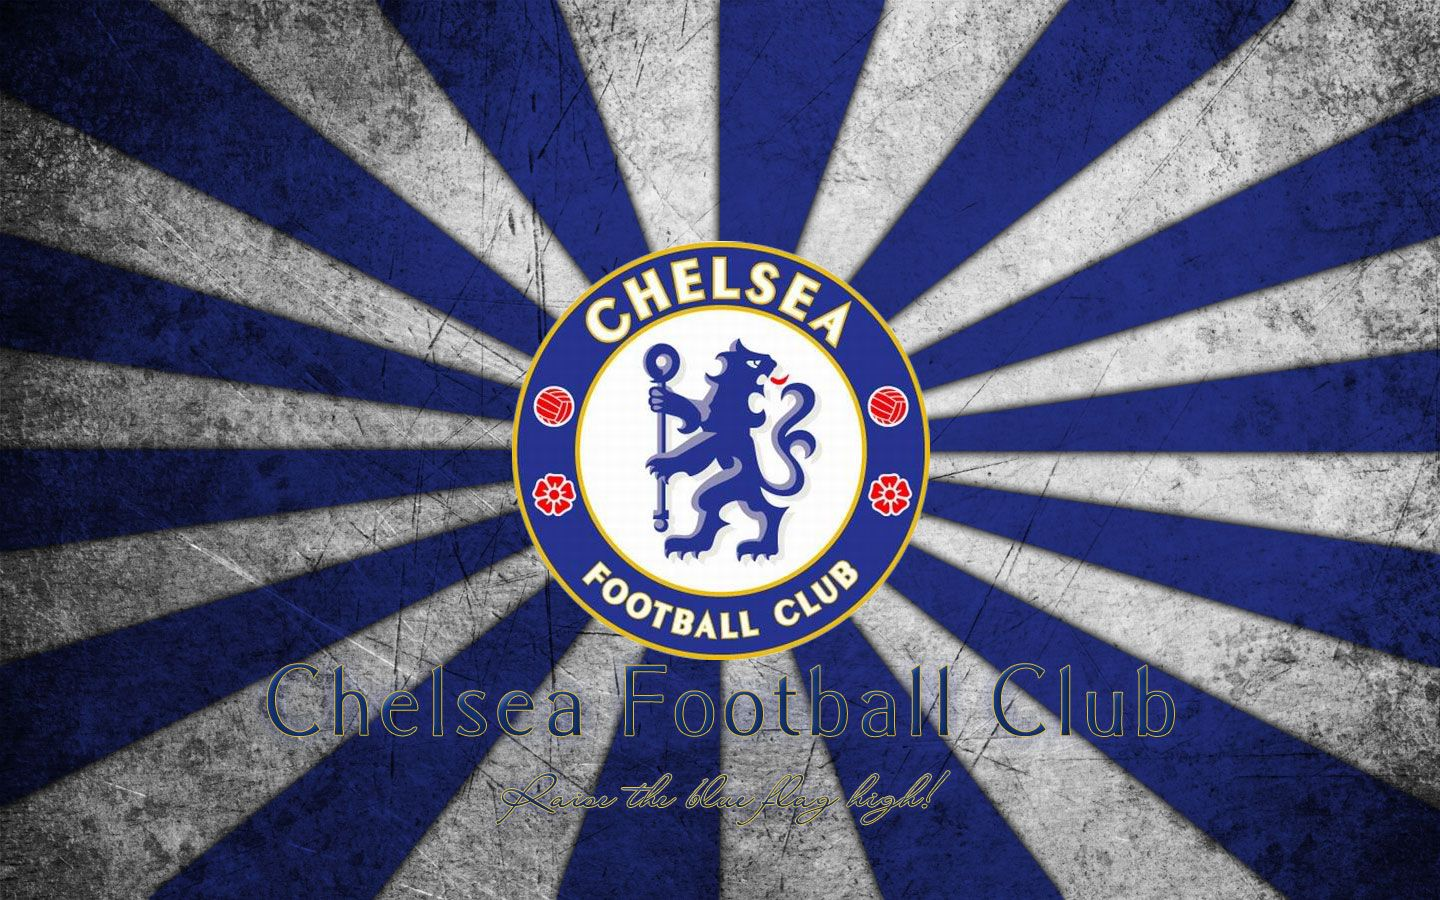 Pin by derlocko on football pinterest chelsea fc and chelsea chelsea logo chelsea fc hd wallpaper badges backgrounds wallpaper images hd name badges button badge badge voltagebd Image collections